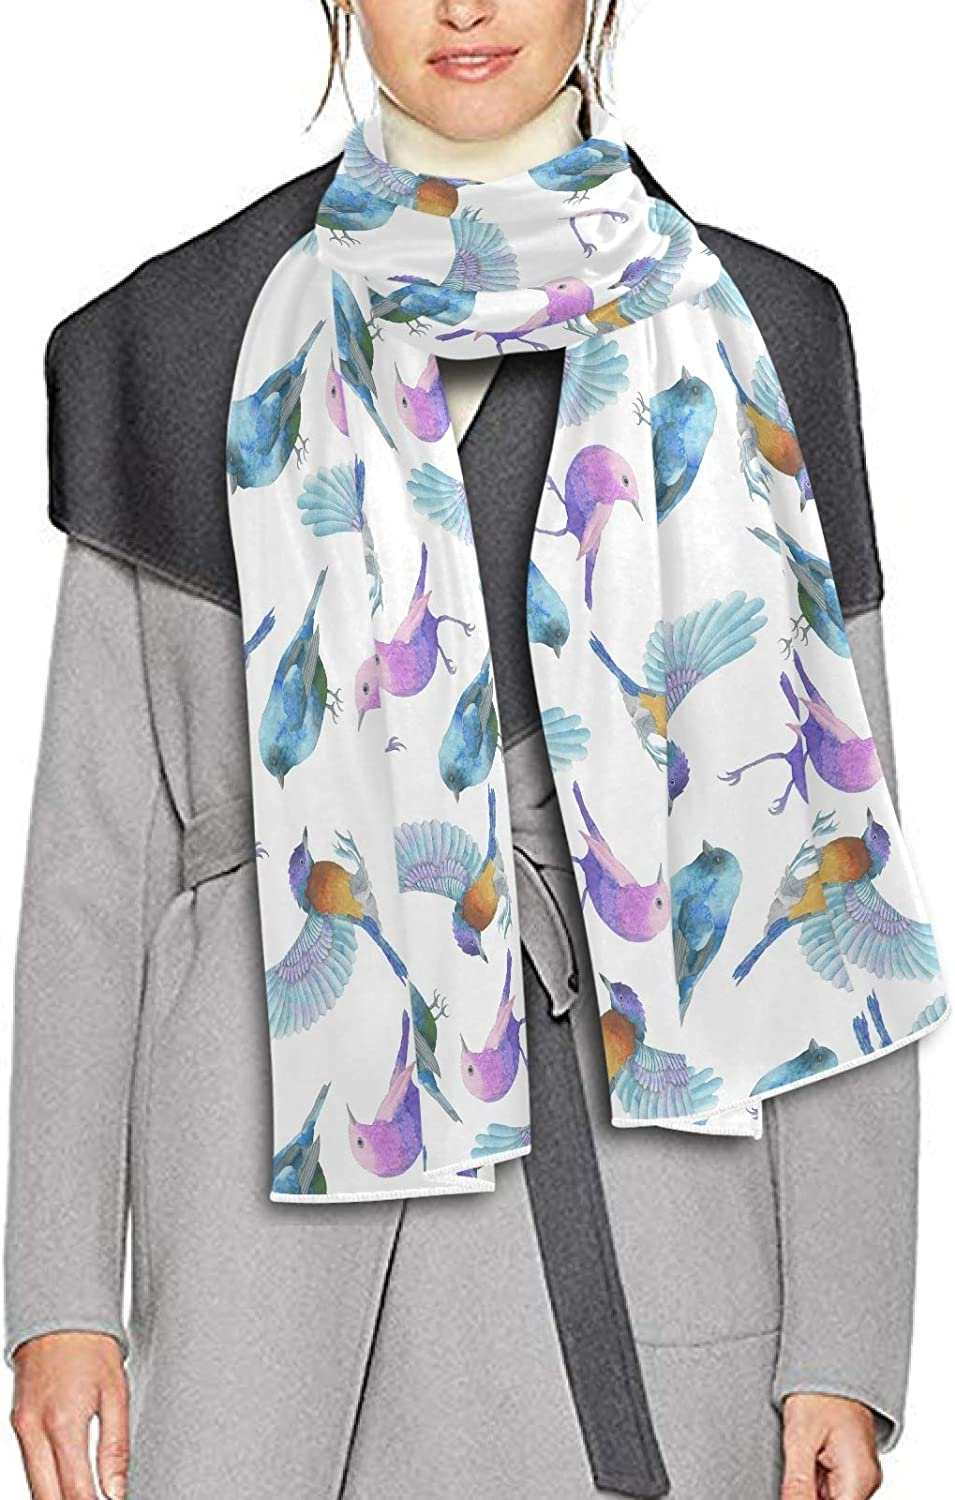 Scarf for Women and Men Bird Blanket Shawl Scarves Wraps Soft thick Winter Oversized Scarves Lightweight